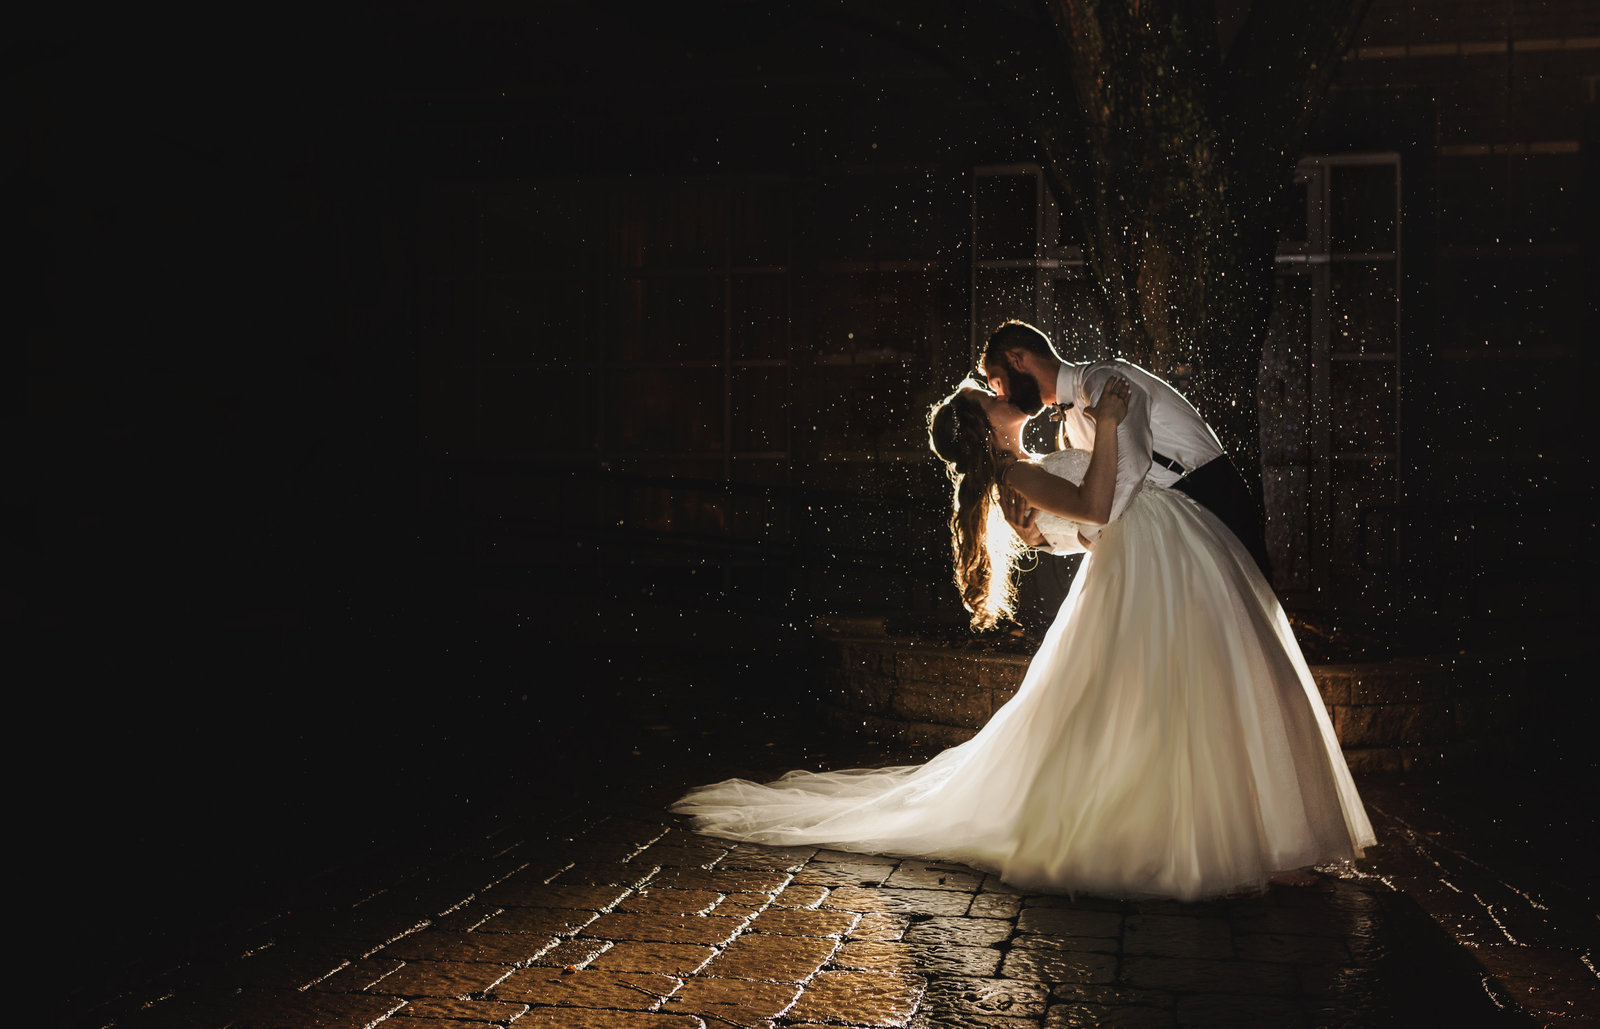 charlotte wedding photographer jamie lucido with bride and groom in the evening with beautiful rain frozen around them as they kiss